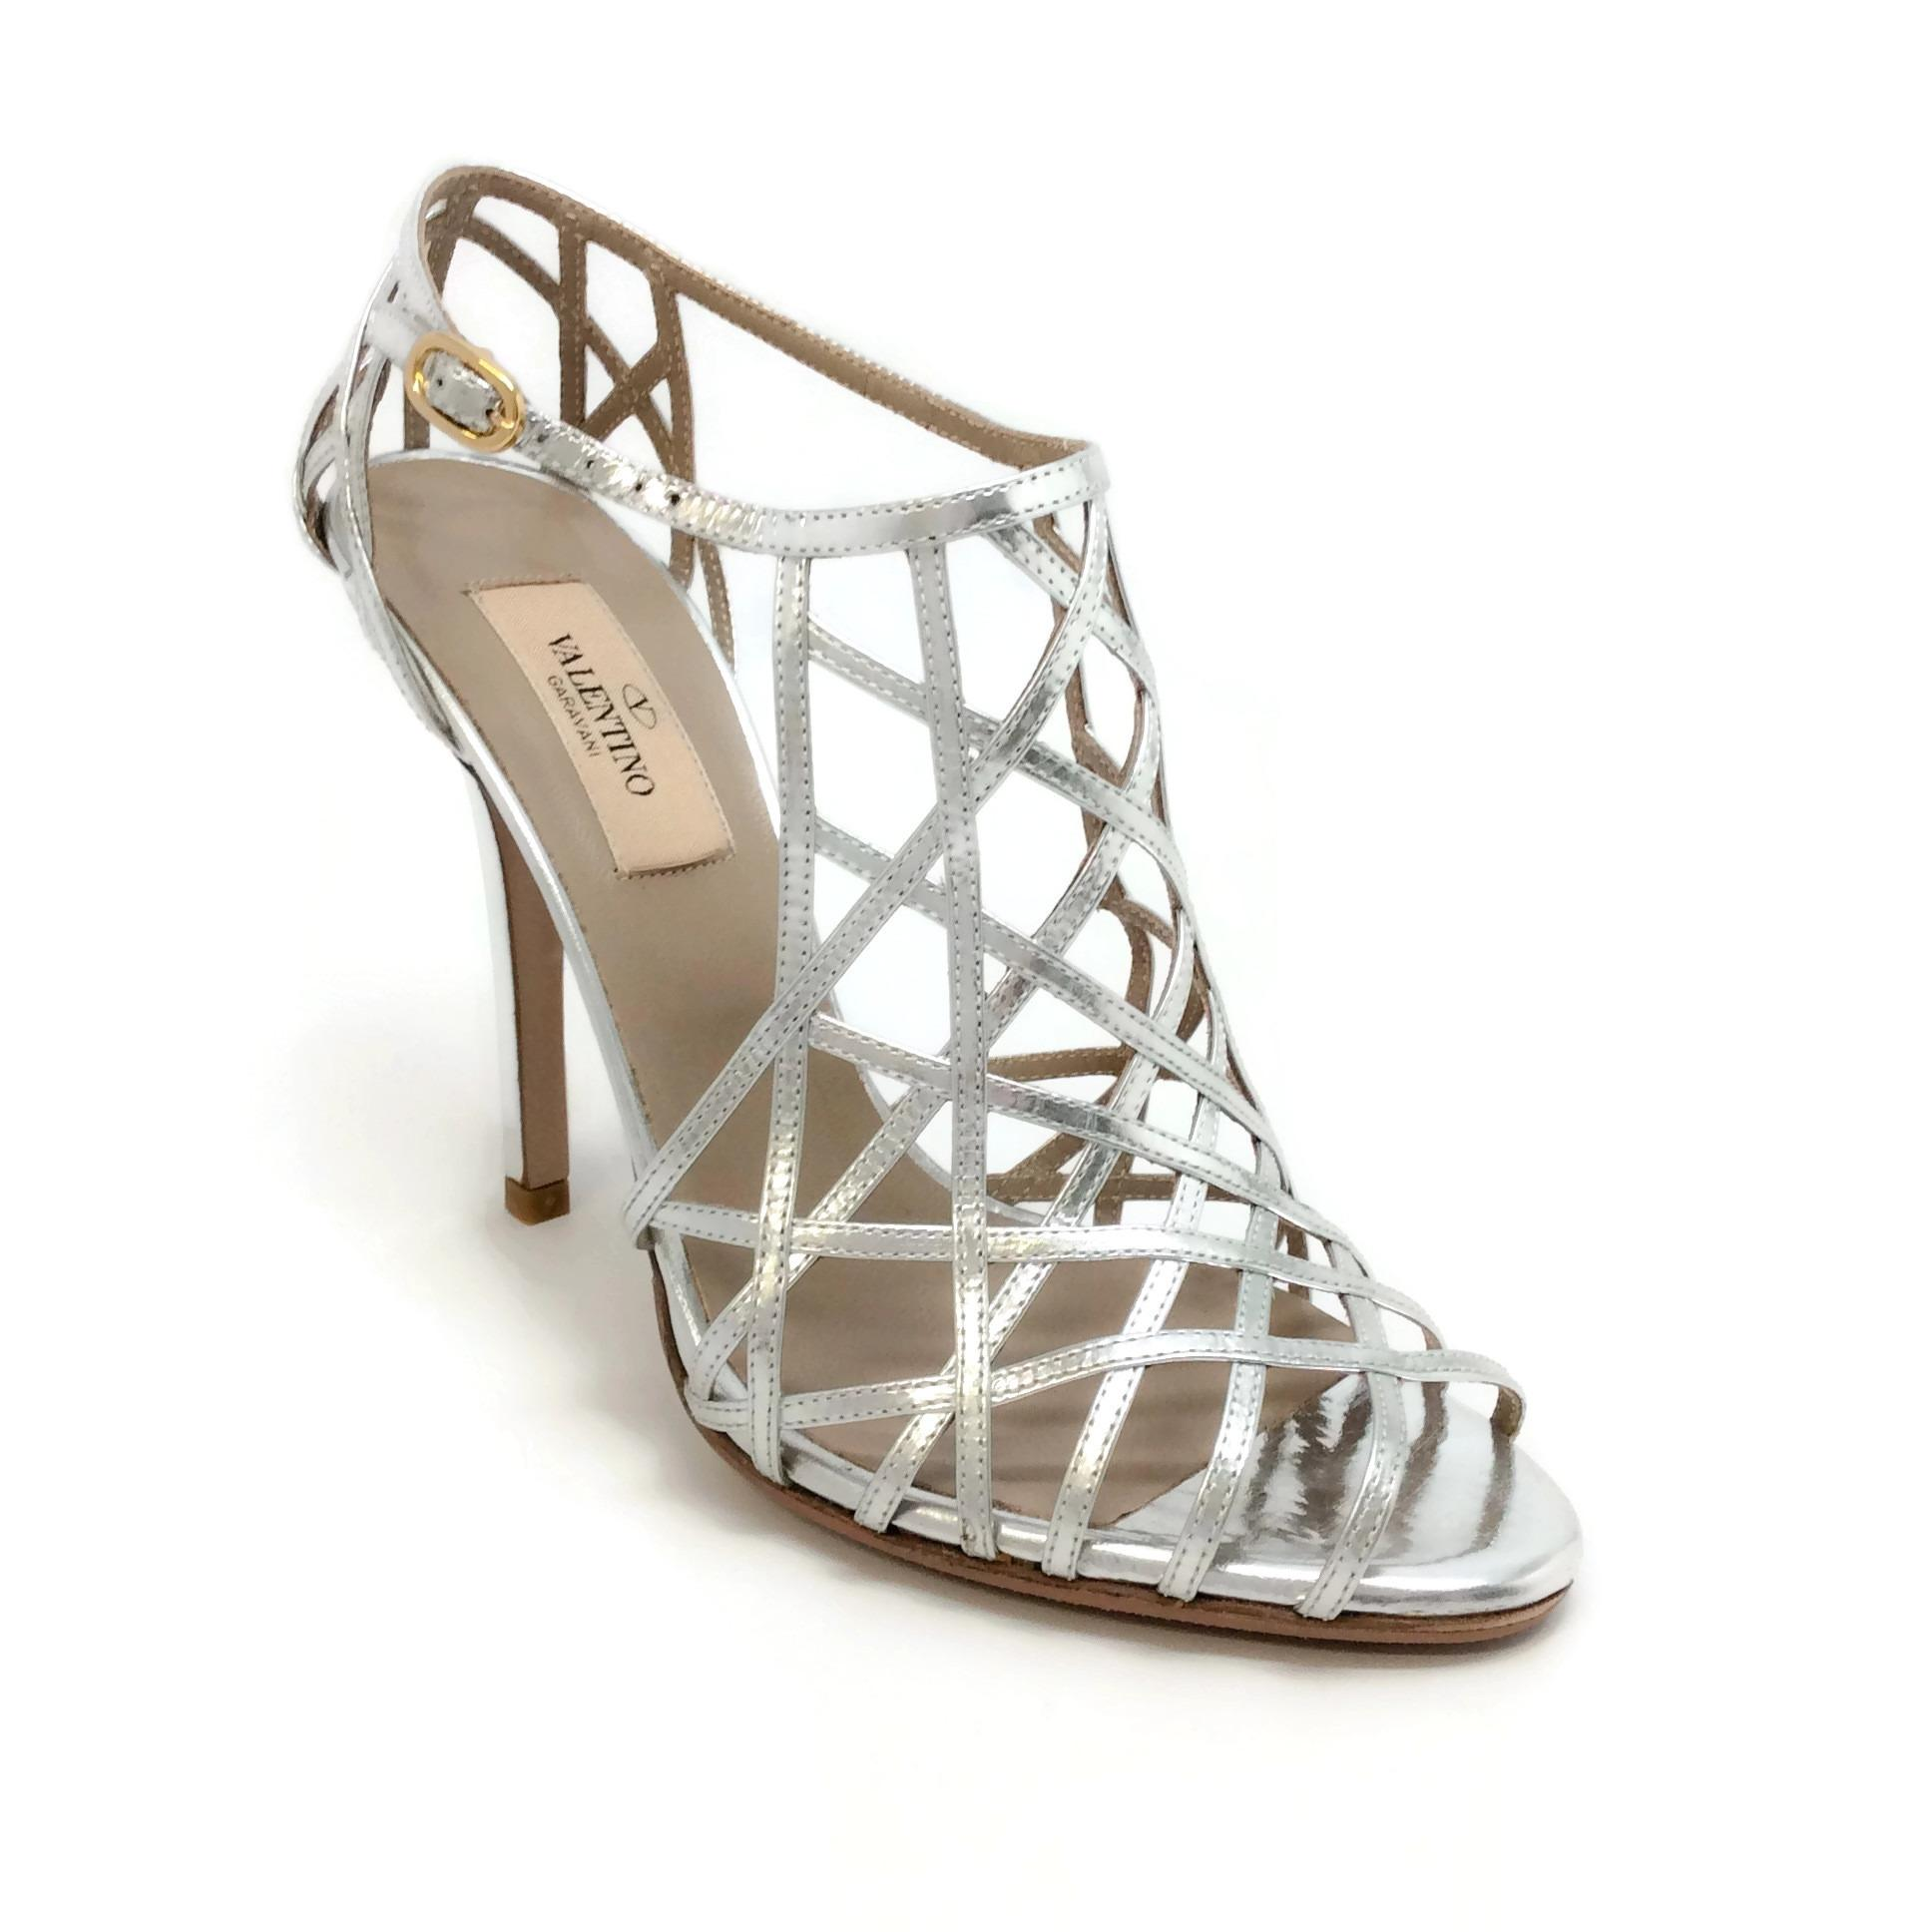 Valentino Metallic Caged Sandals discounts cheap online free shipping tumblr huge surprise best store to get cheap online 461Ox9sUu